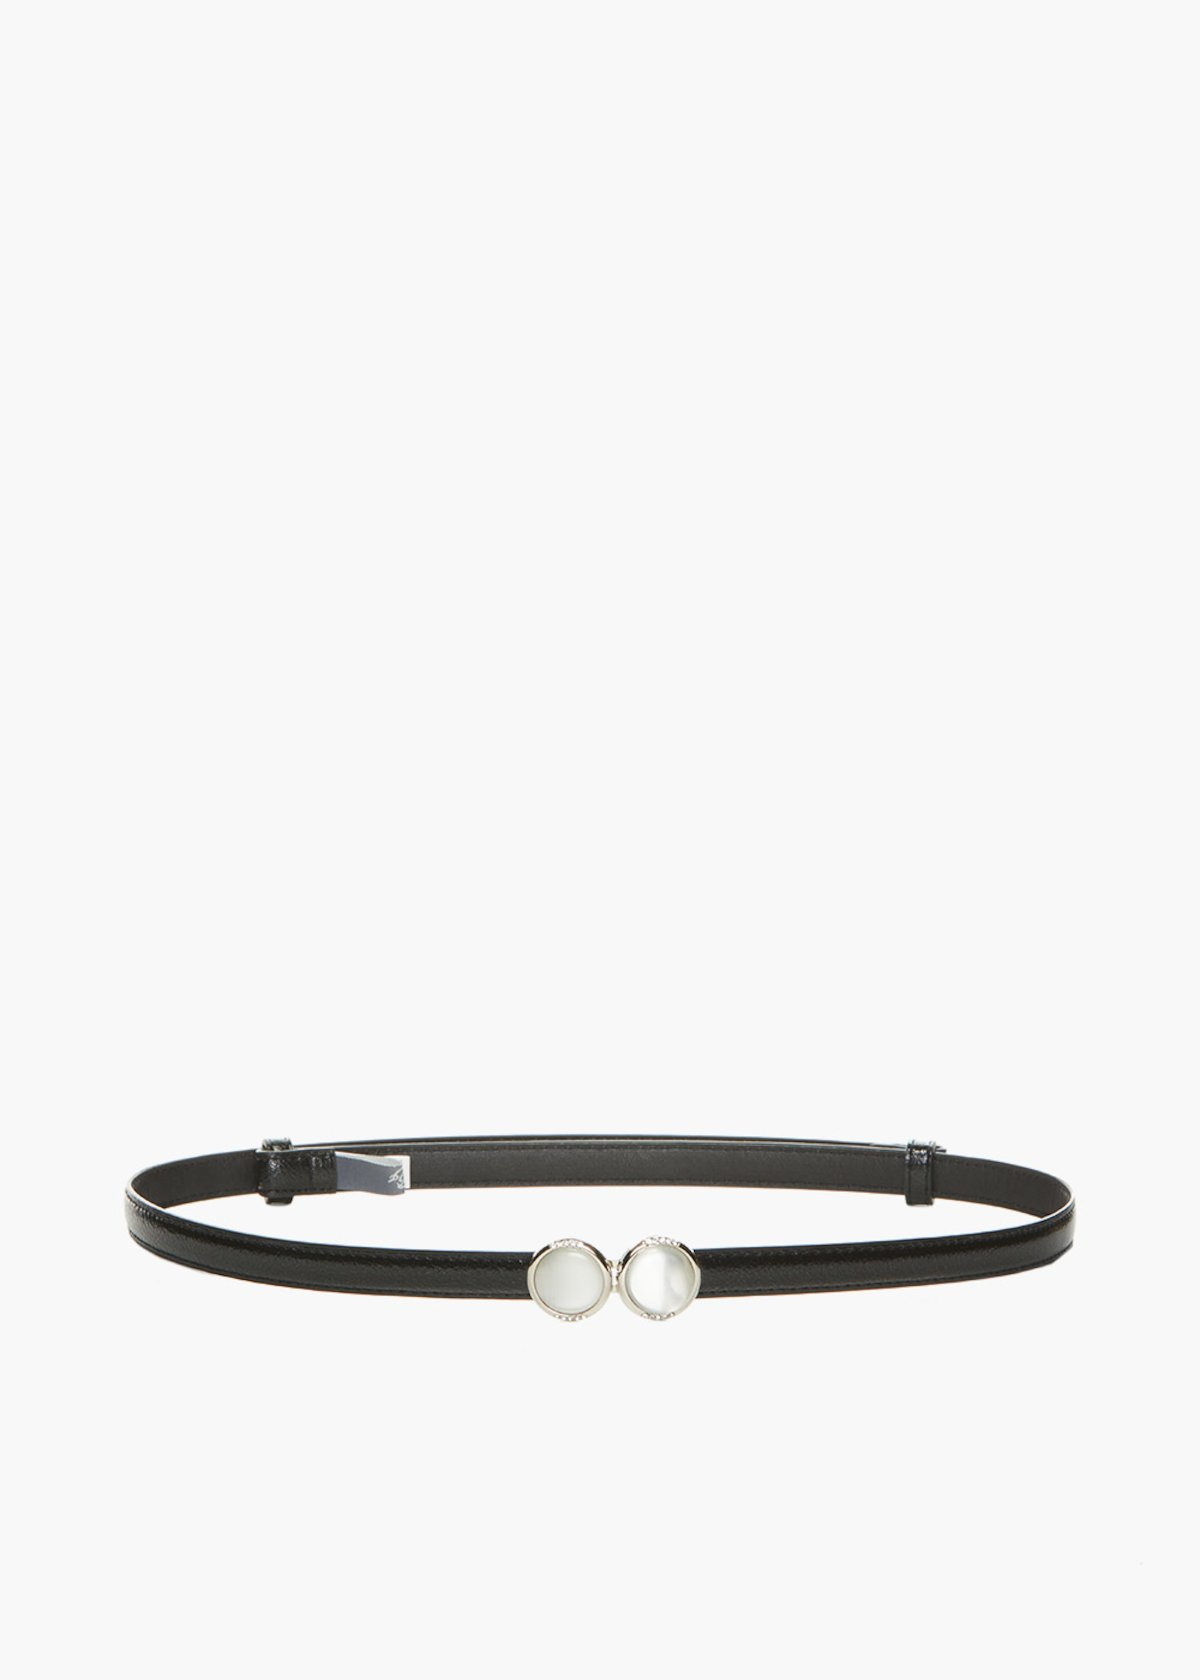 Faux leather Chiacy belt deer print and pearls fastening - Black - Woman